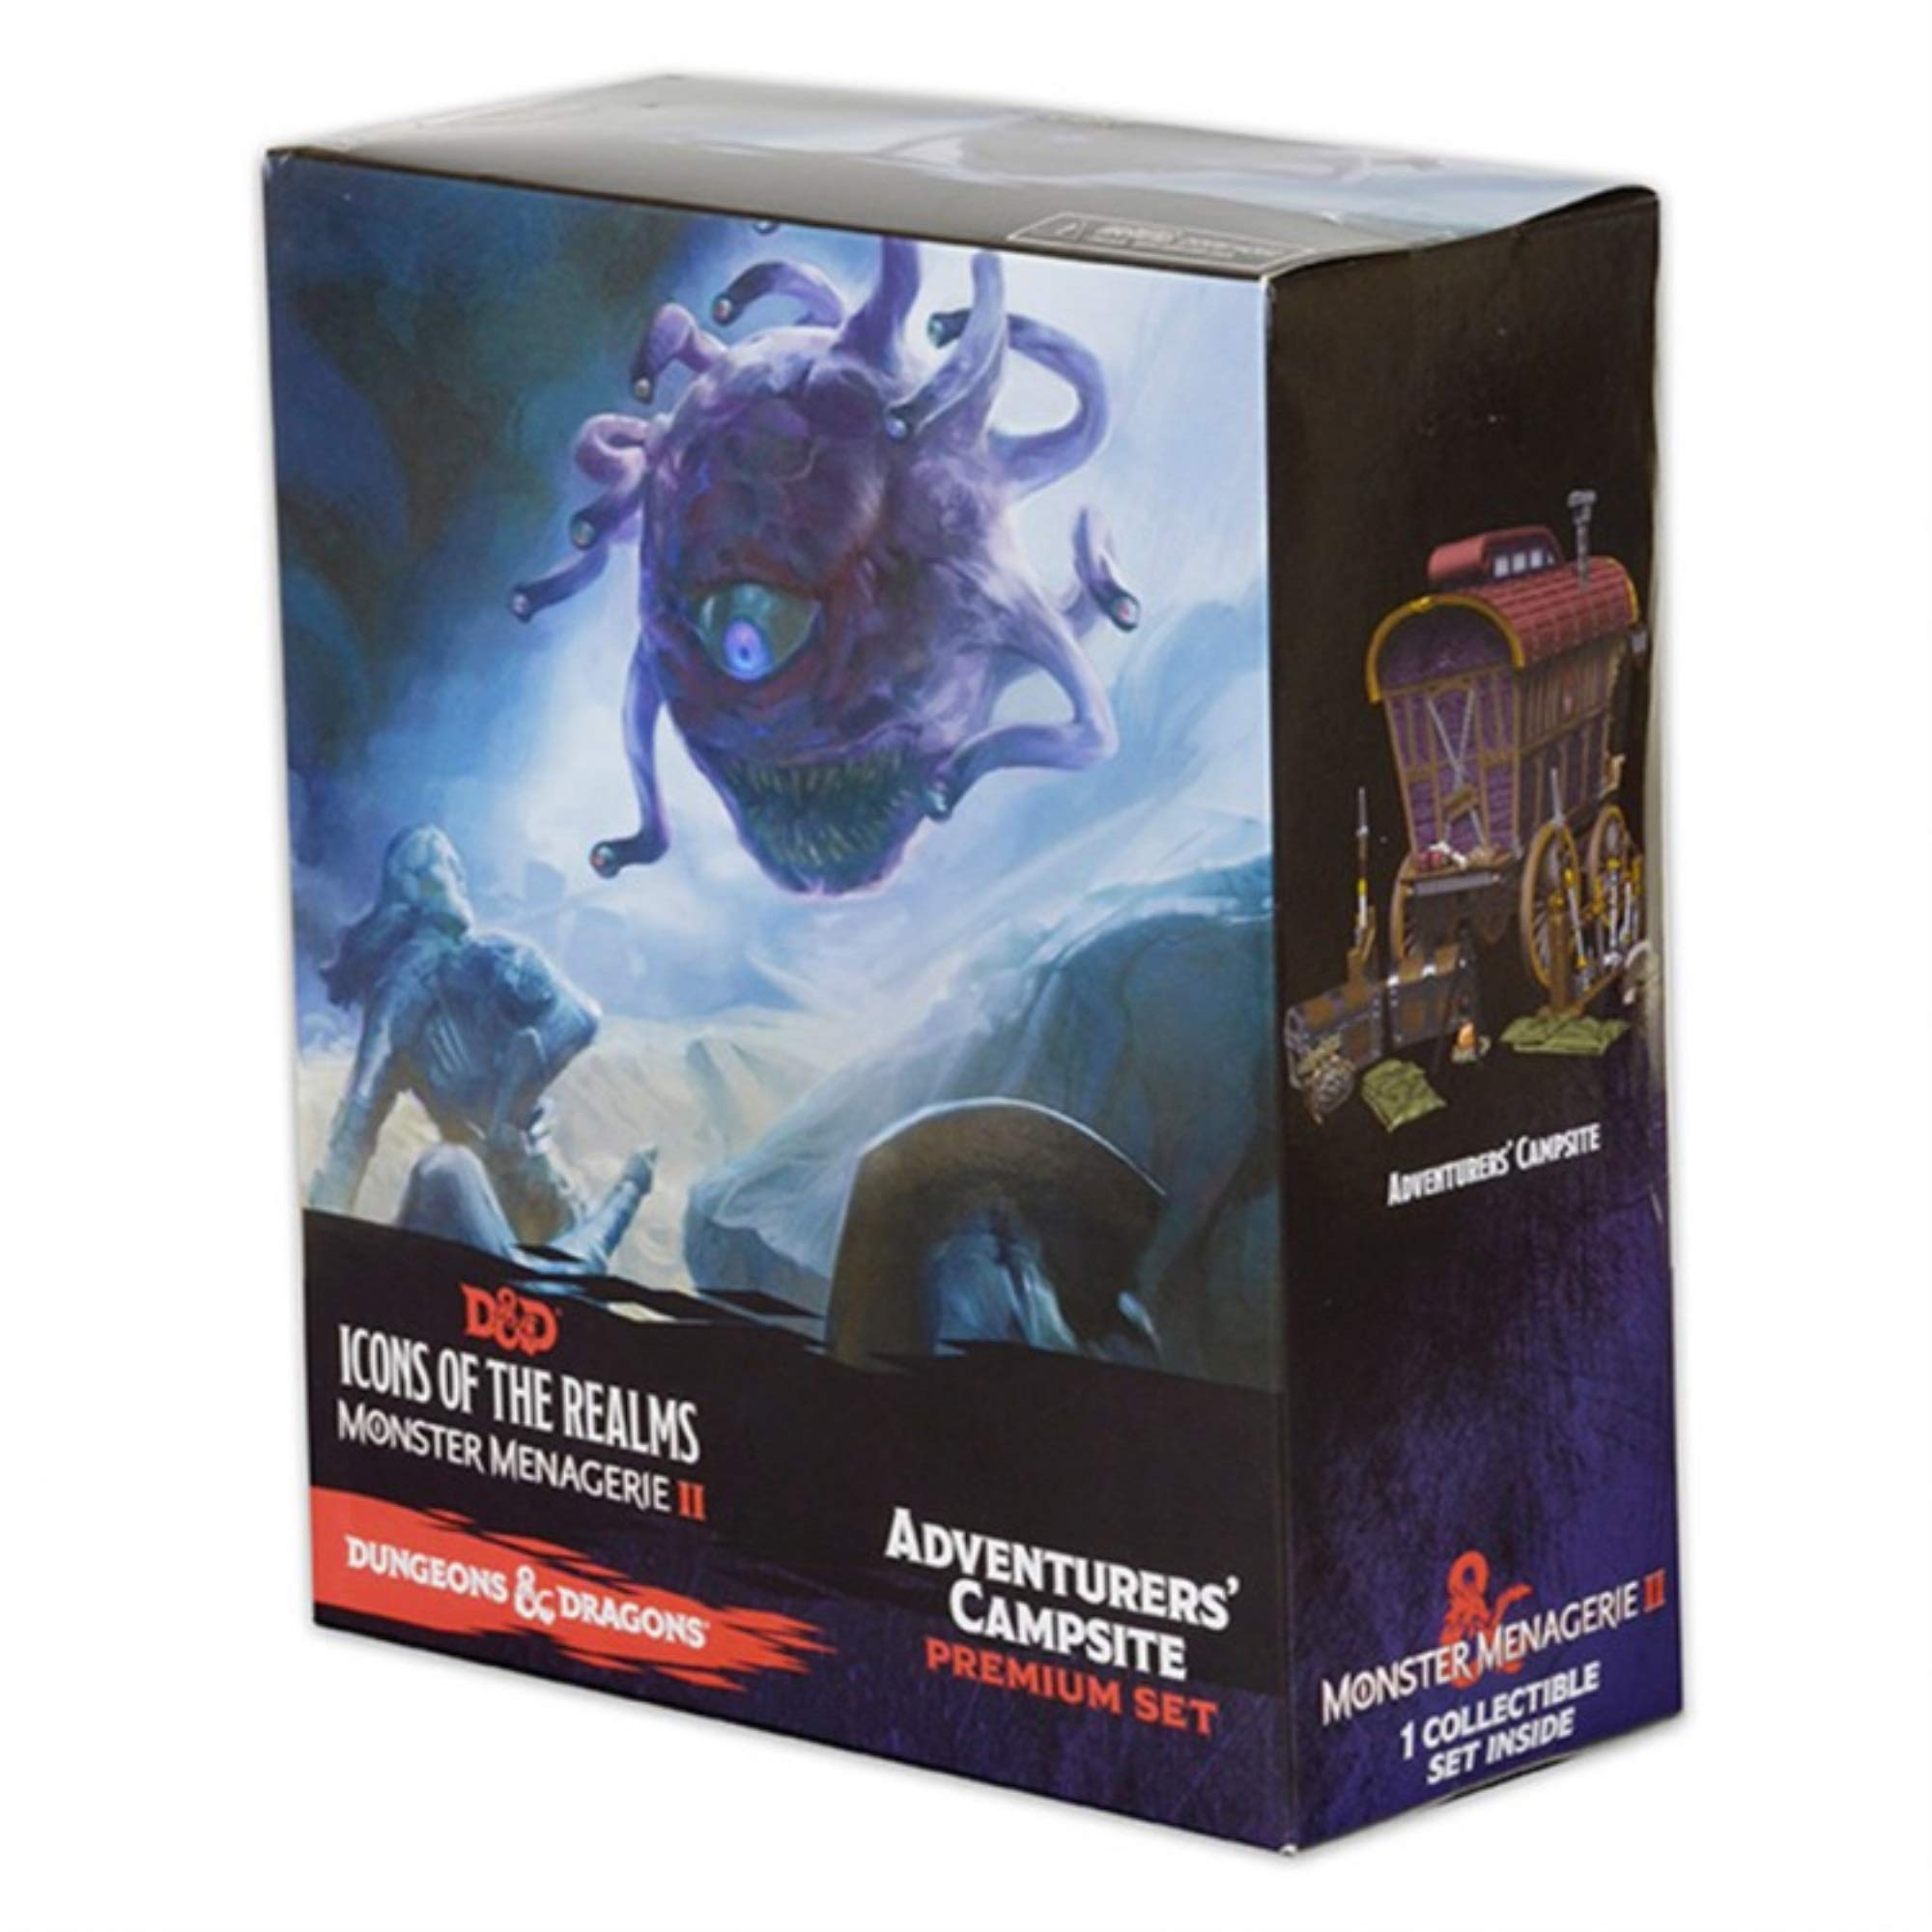 WizKids NECA D&D Icons of The Realms: Monster Menagerie 2 Adventurer's Campsite D&D 2, Dungeons and Dragons